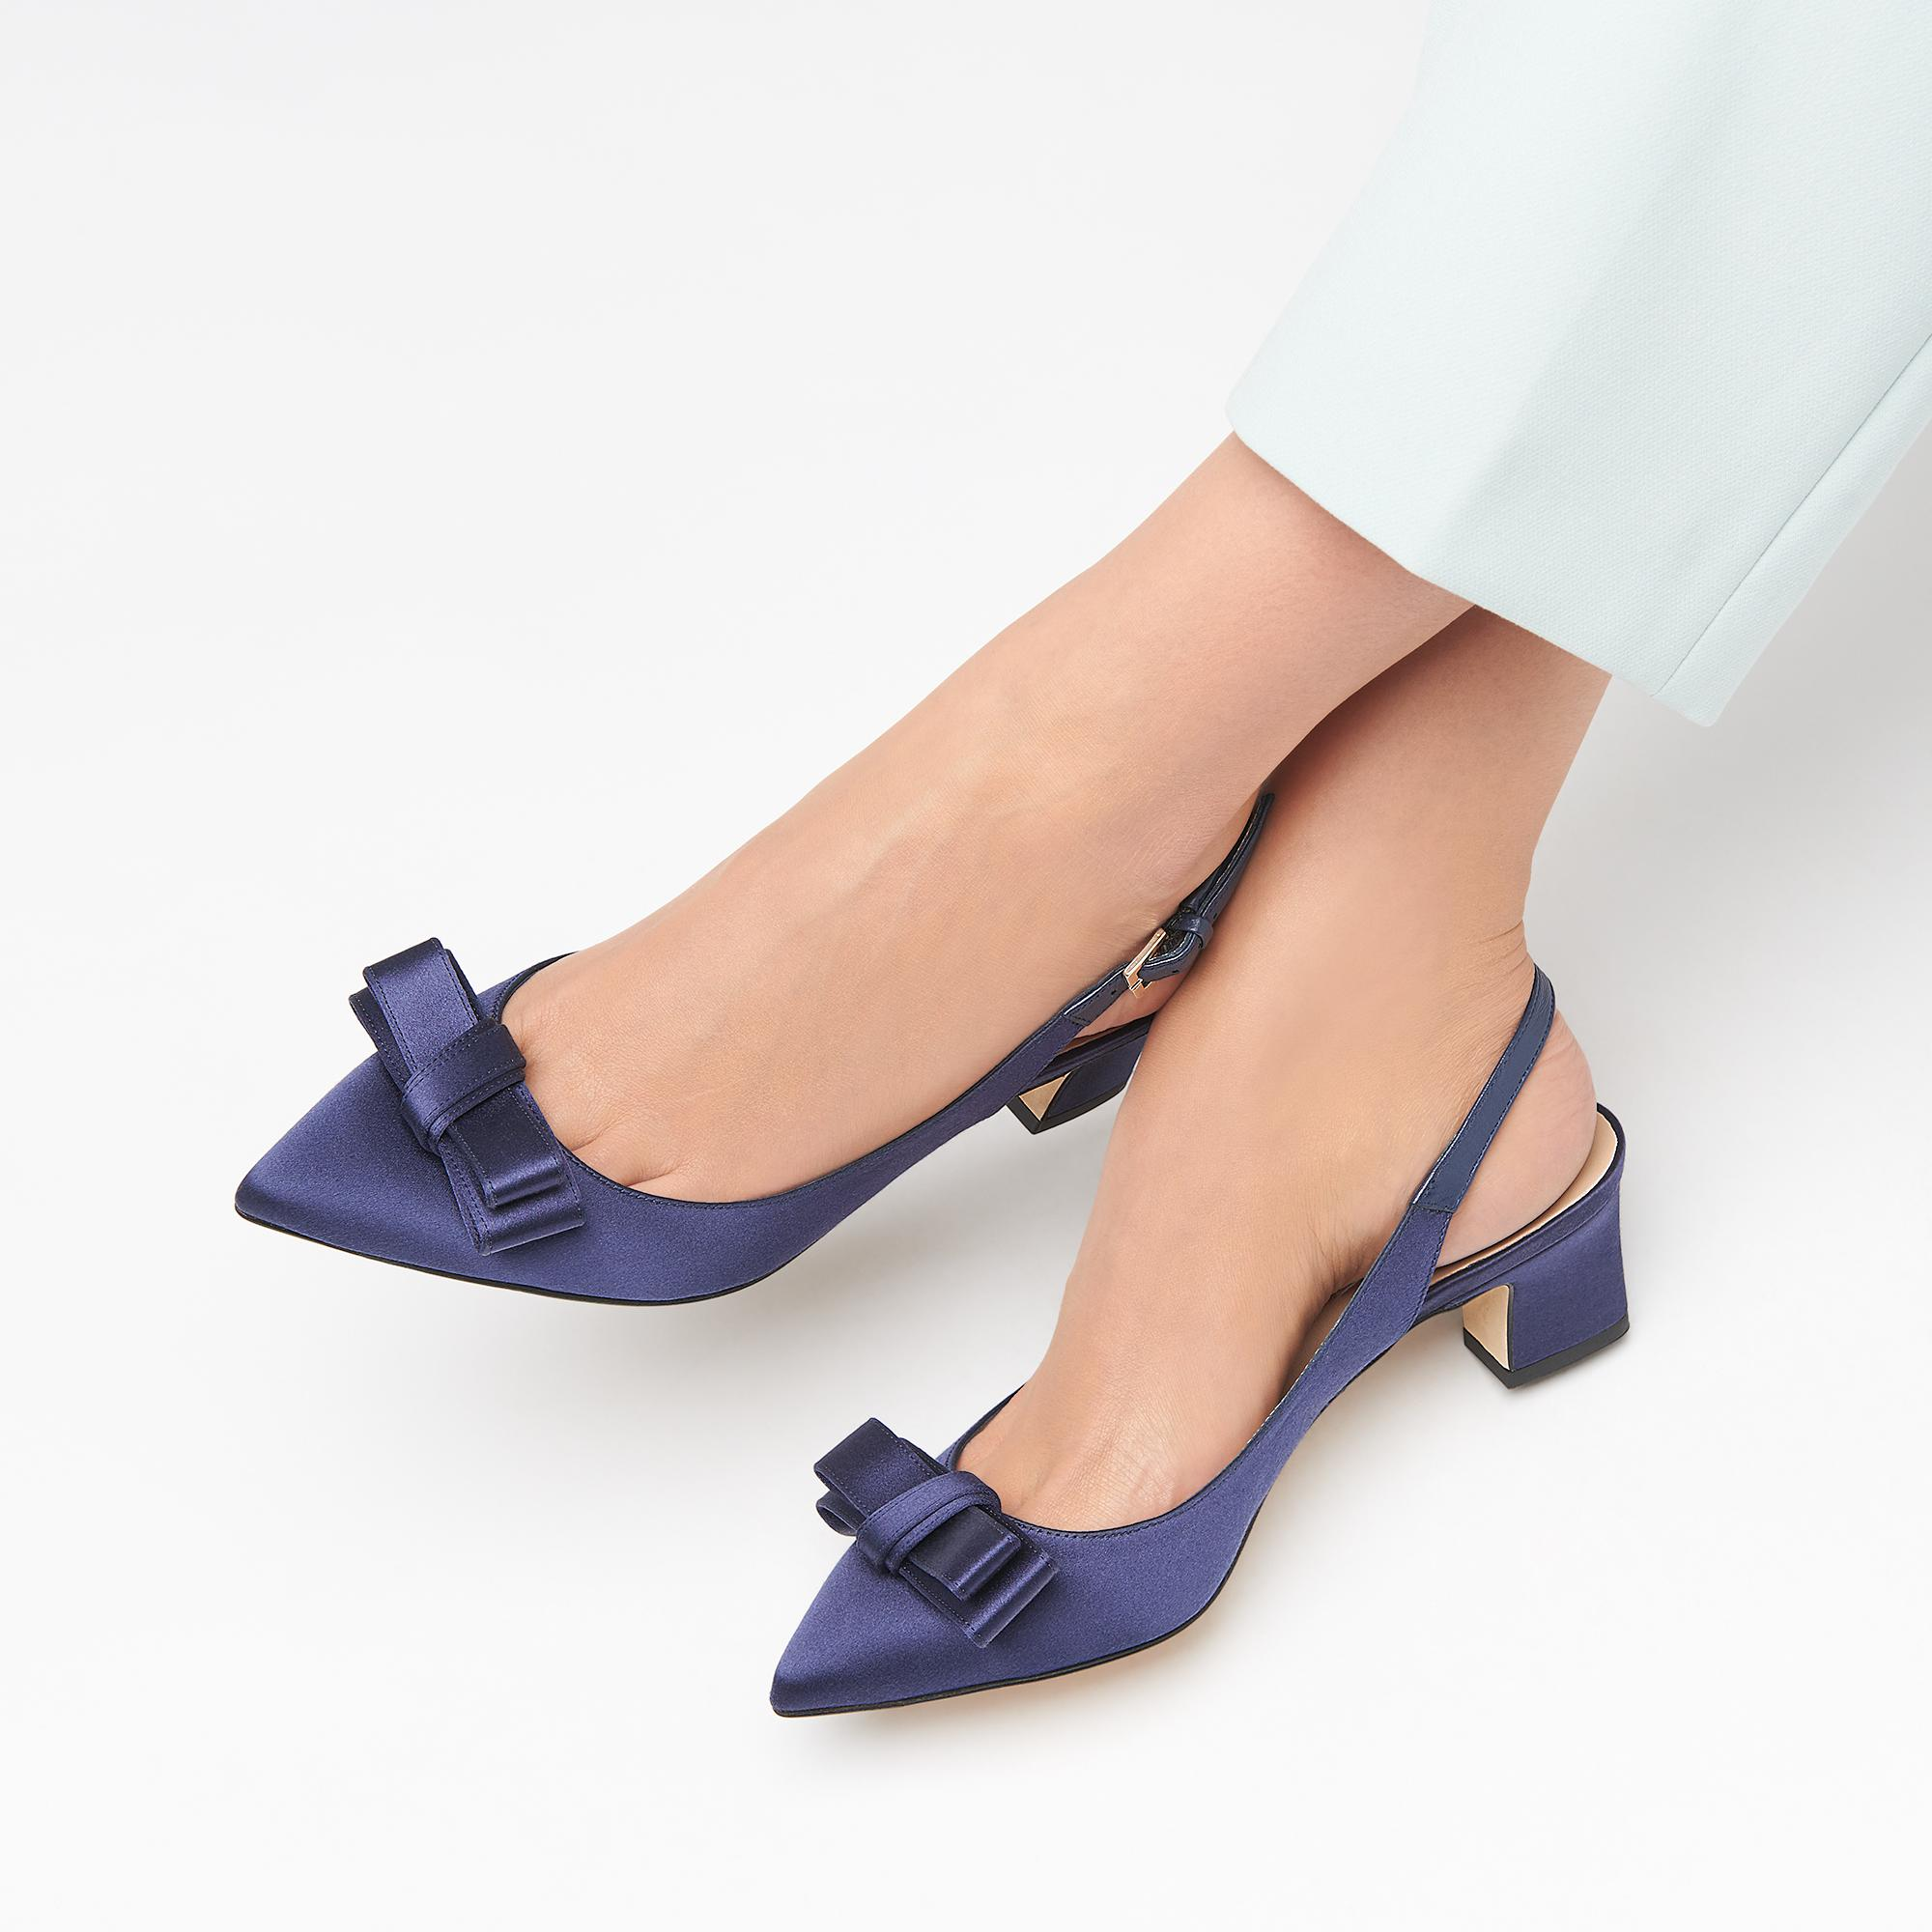 Collections Satin Navy Heels k Shoes Pippa bennett Heel L 5a7wnqxXz